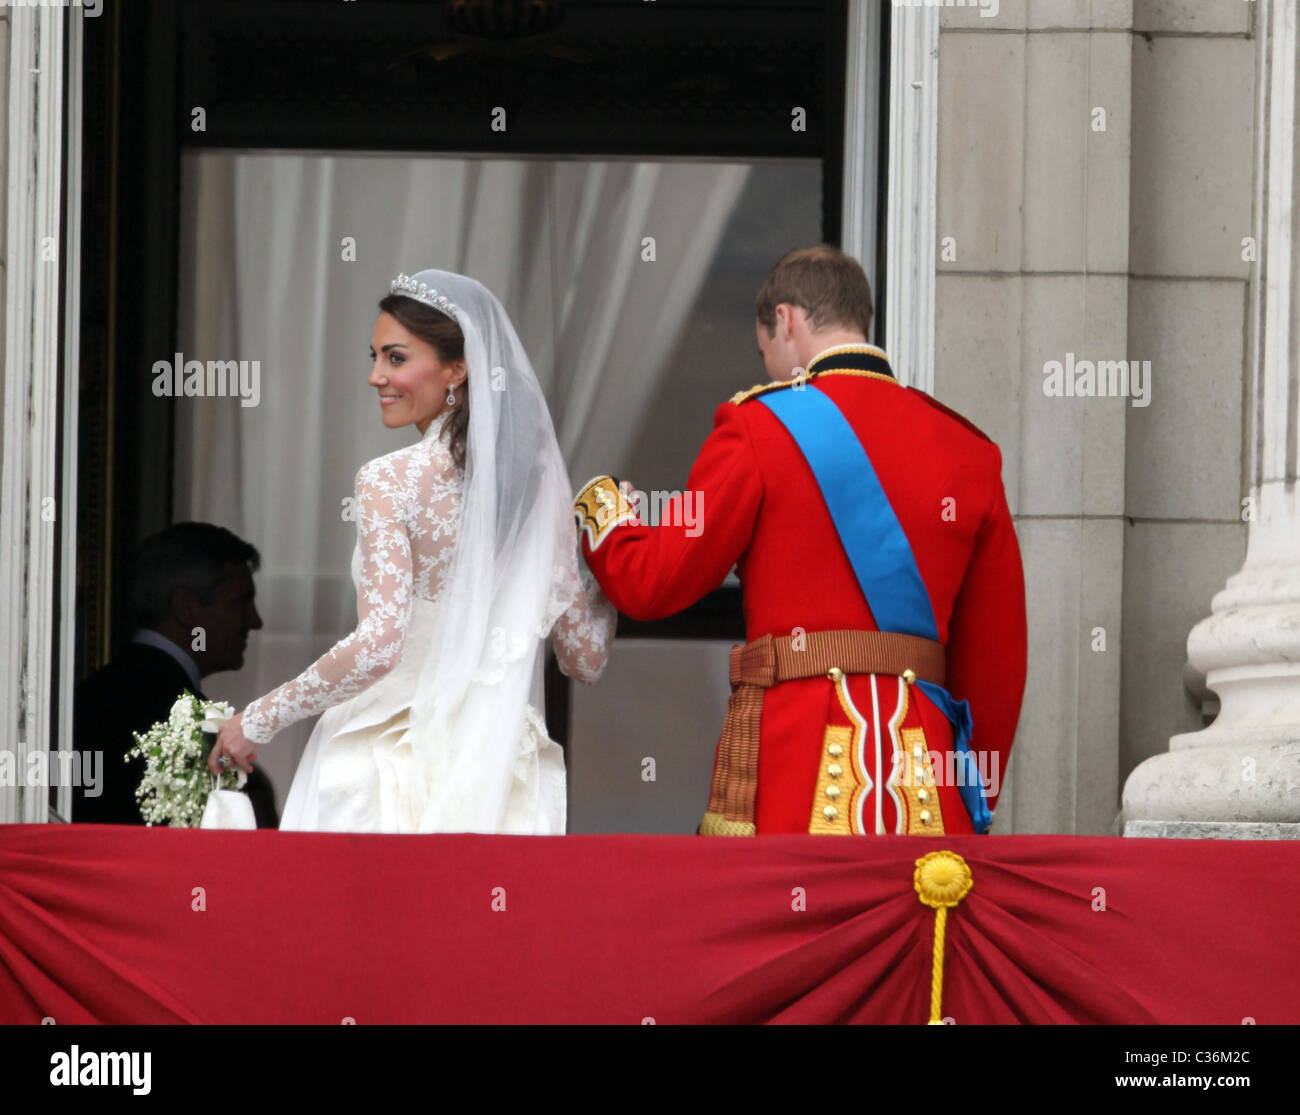 The Wedding of Prince William and Catherine Middleton. 29th April 2011. The newly married couple on the balcony Stock Photo